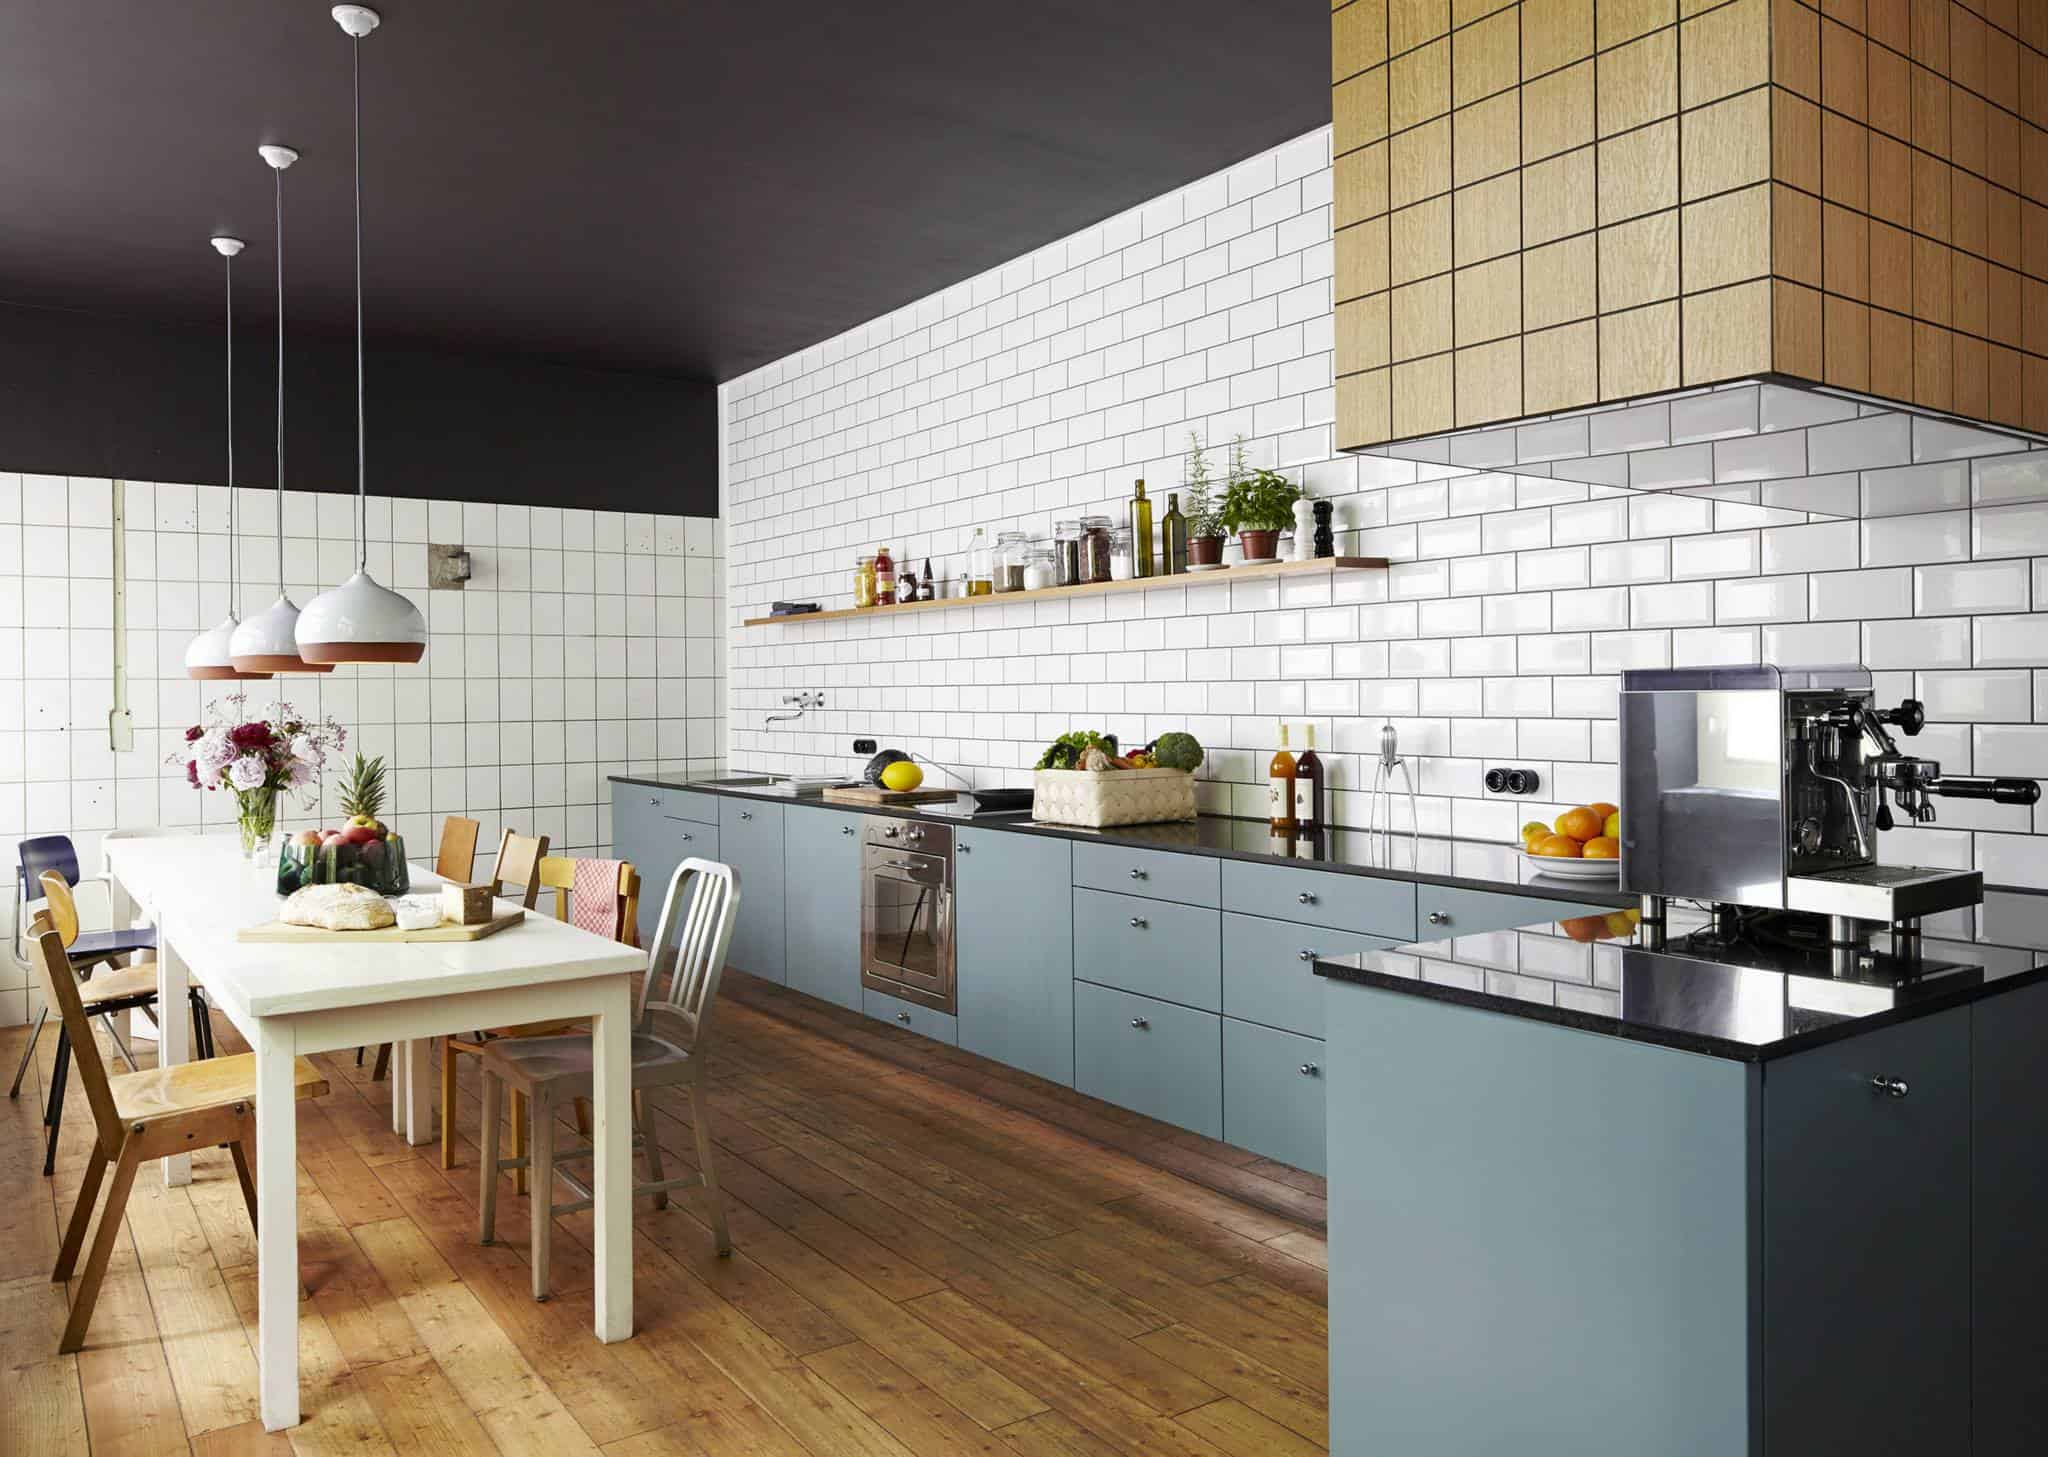 White subway tile kitchen designs are incredibly universal for Different kitchen design ideas